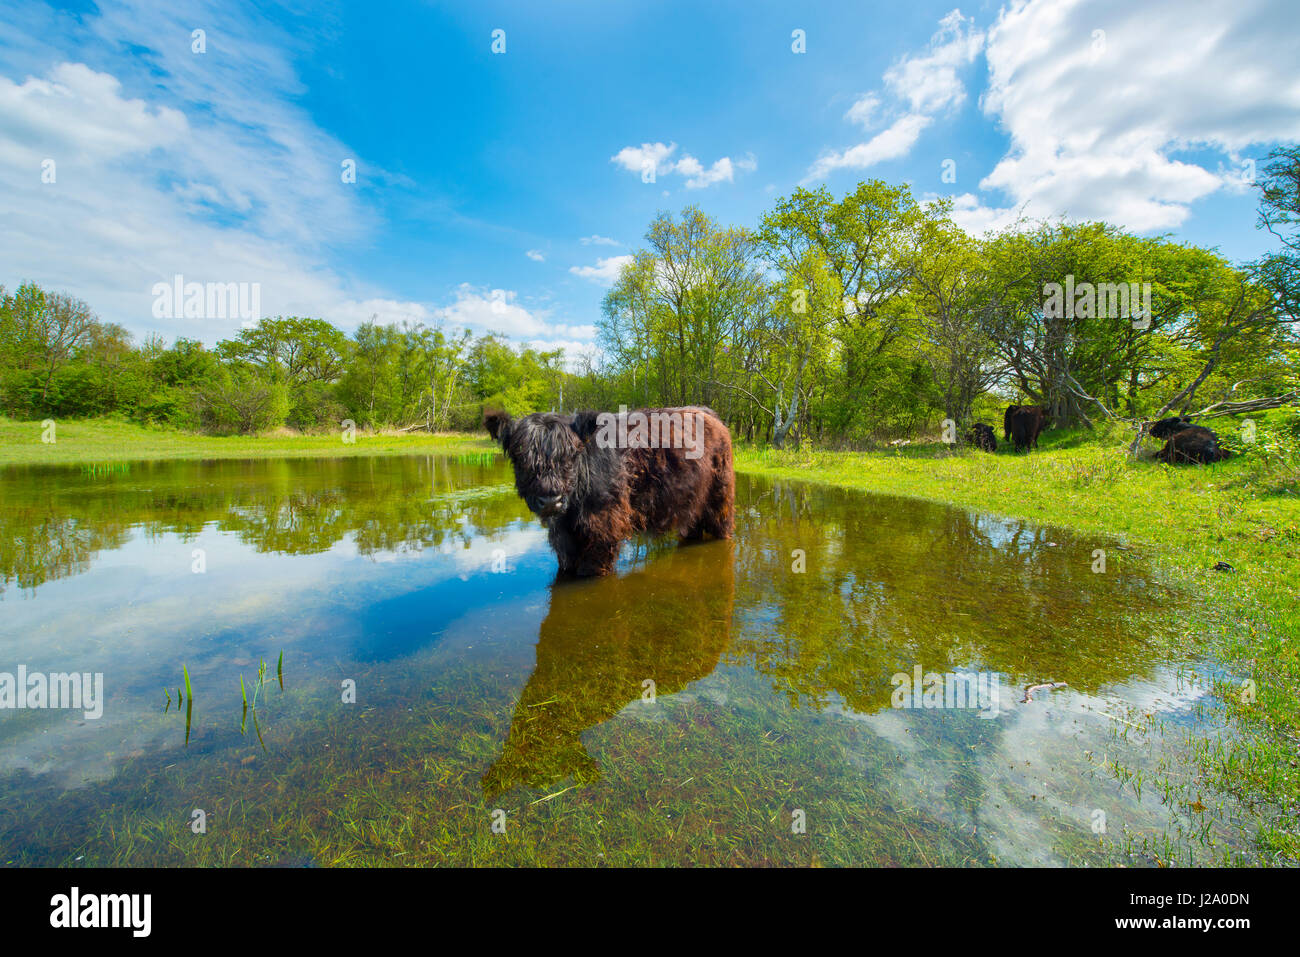 Galloway cow in wet dune slack during summer - Stock Image